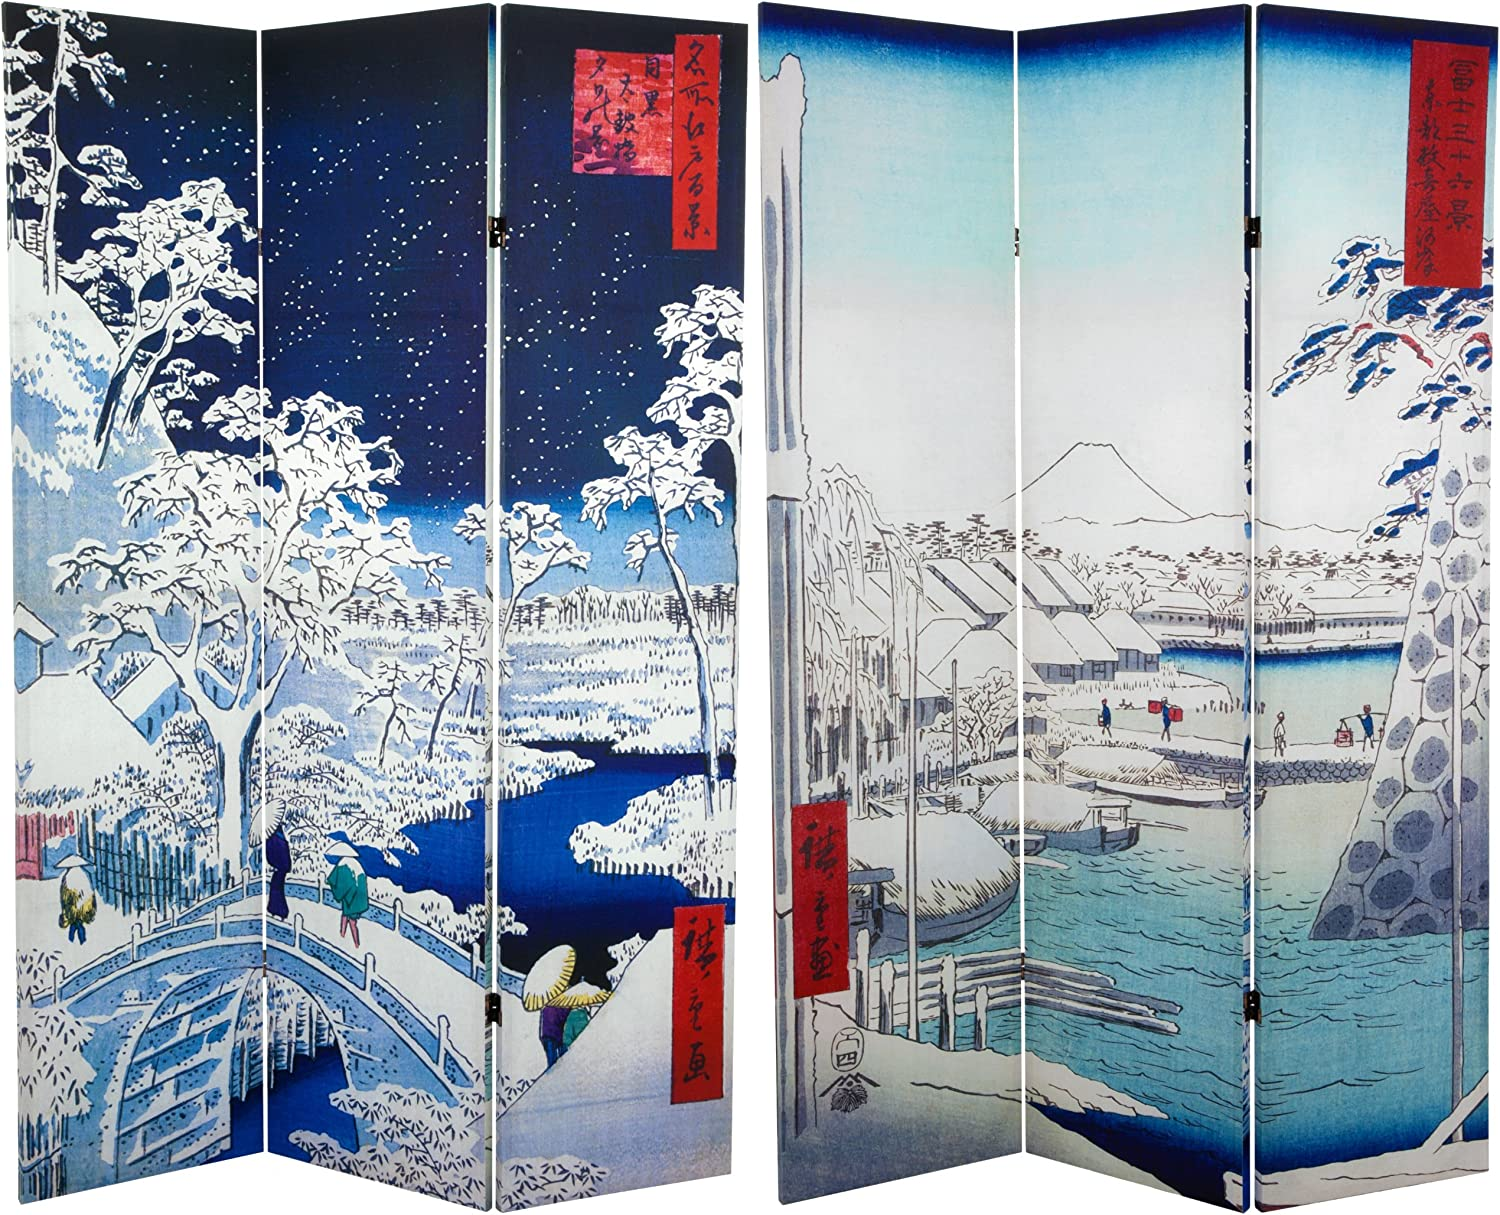 3 Panel Size 6-Feet Tall Diamond Weave Natural Fiber Folding Screen Oriental Furniture Most Popular Room Dividers and Floor Screens White